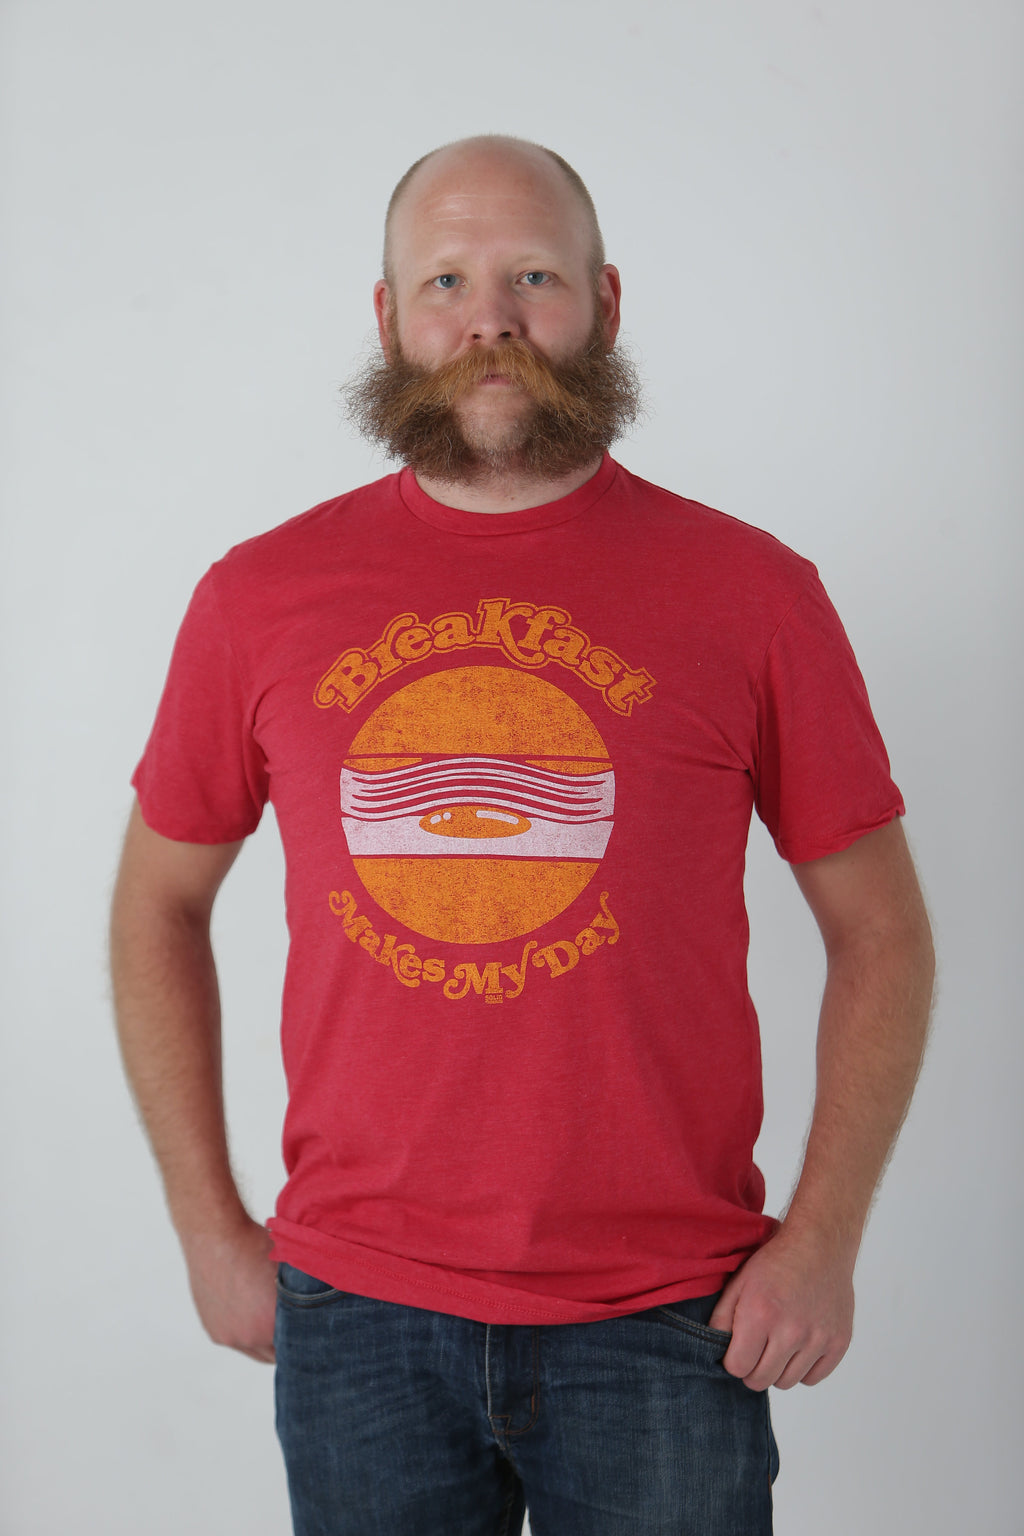 Breakfast Makes My Day T-Shirt - Tractor Beam Apparel